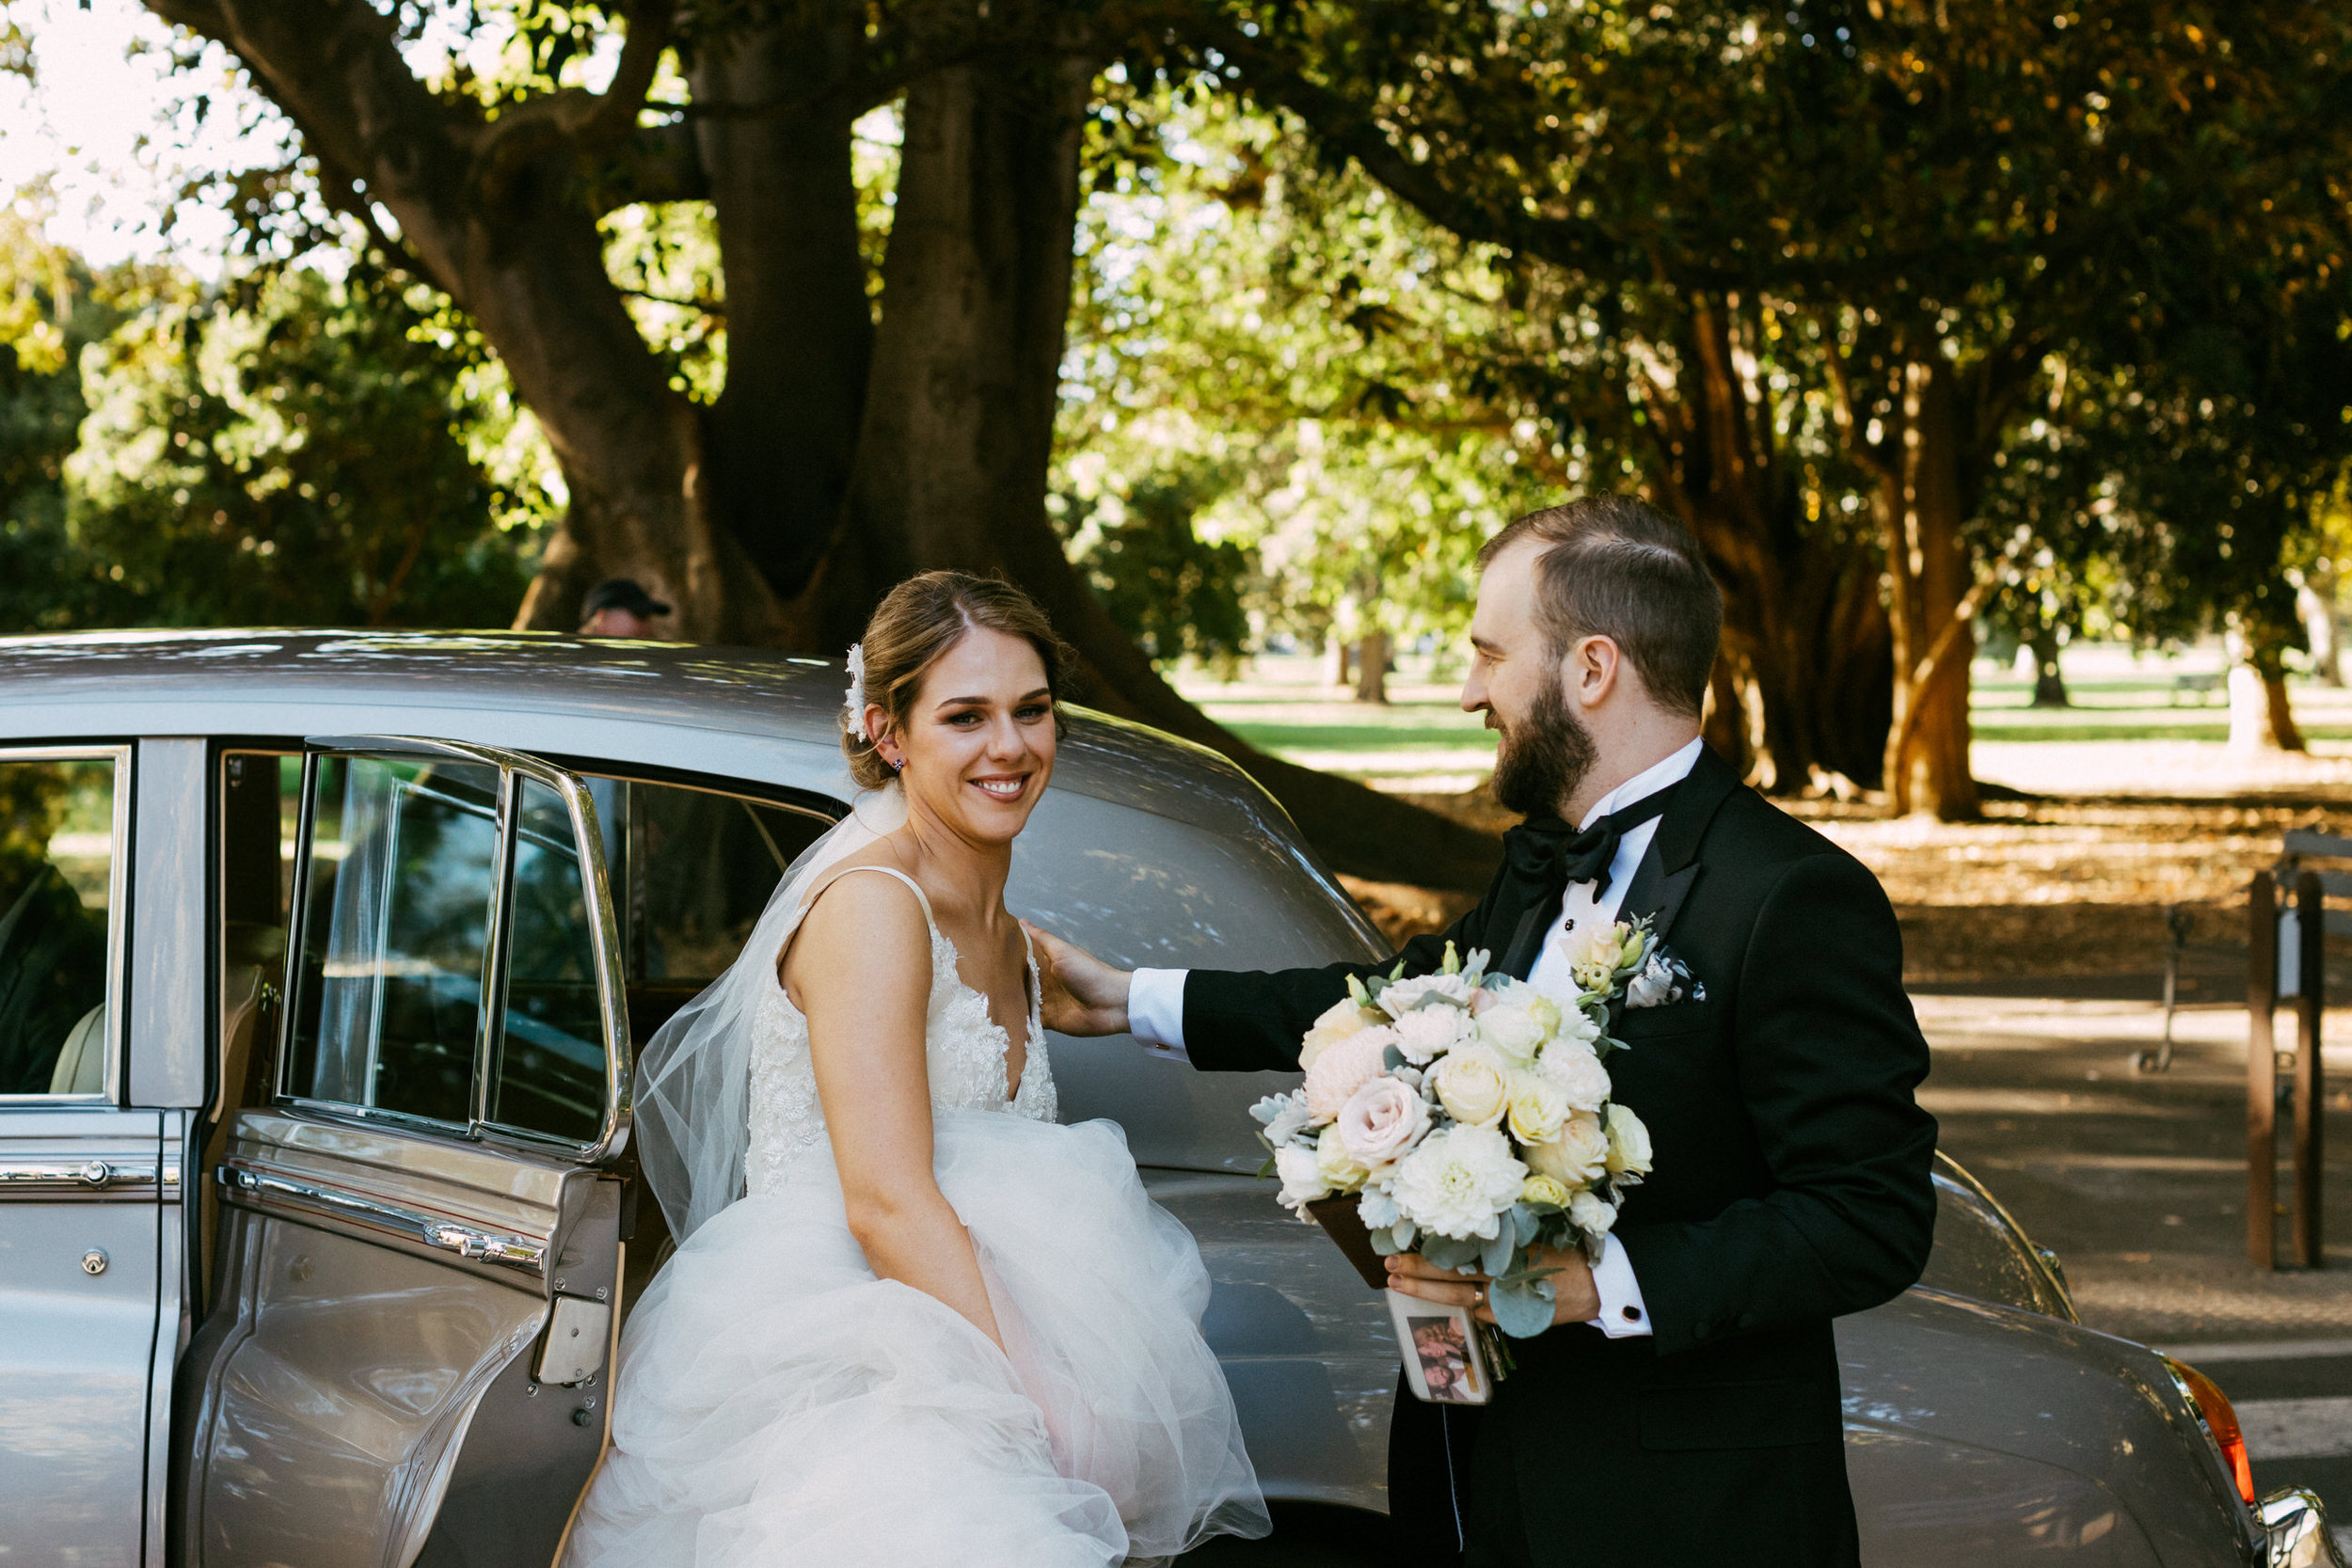 Adelaide Wedding 2019 088.jpg